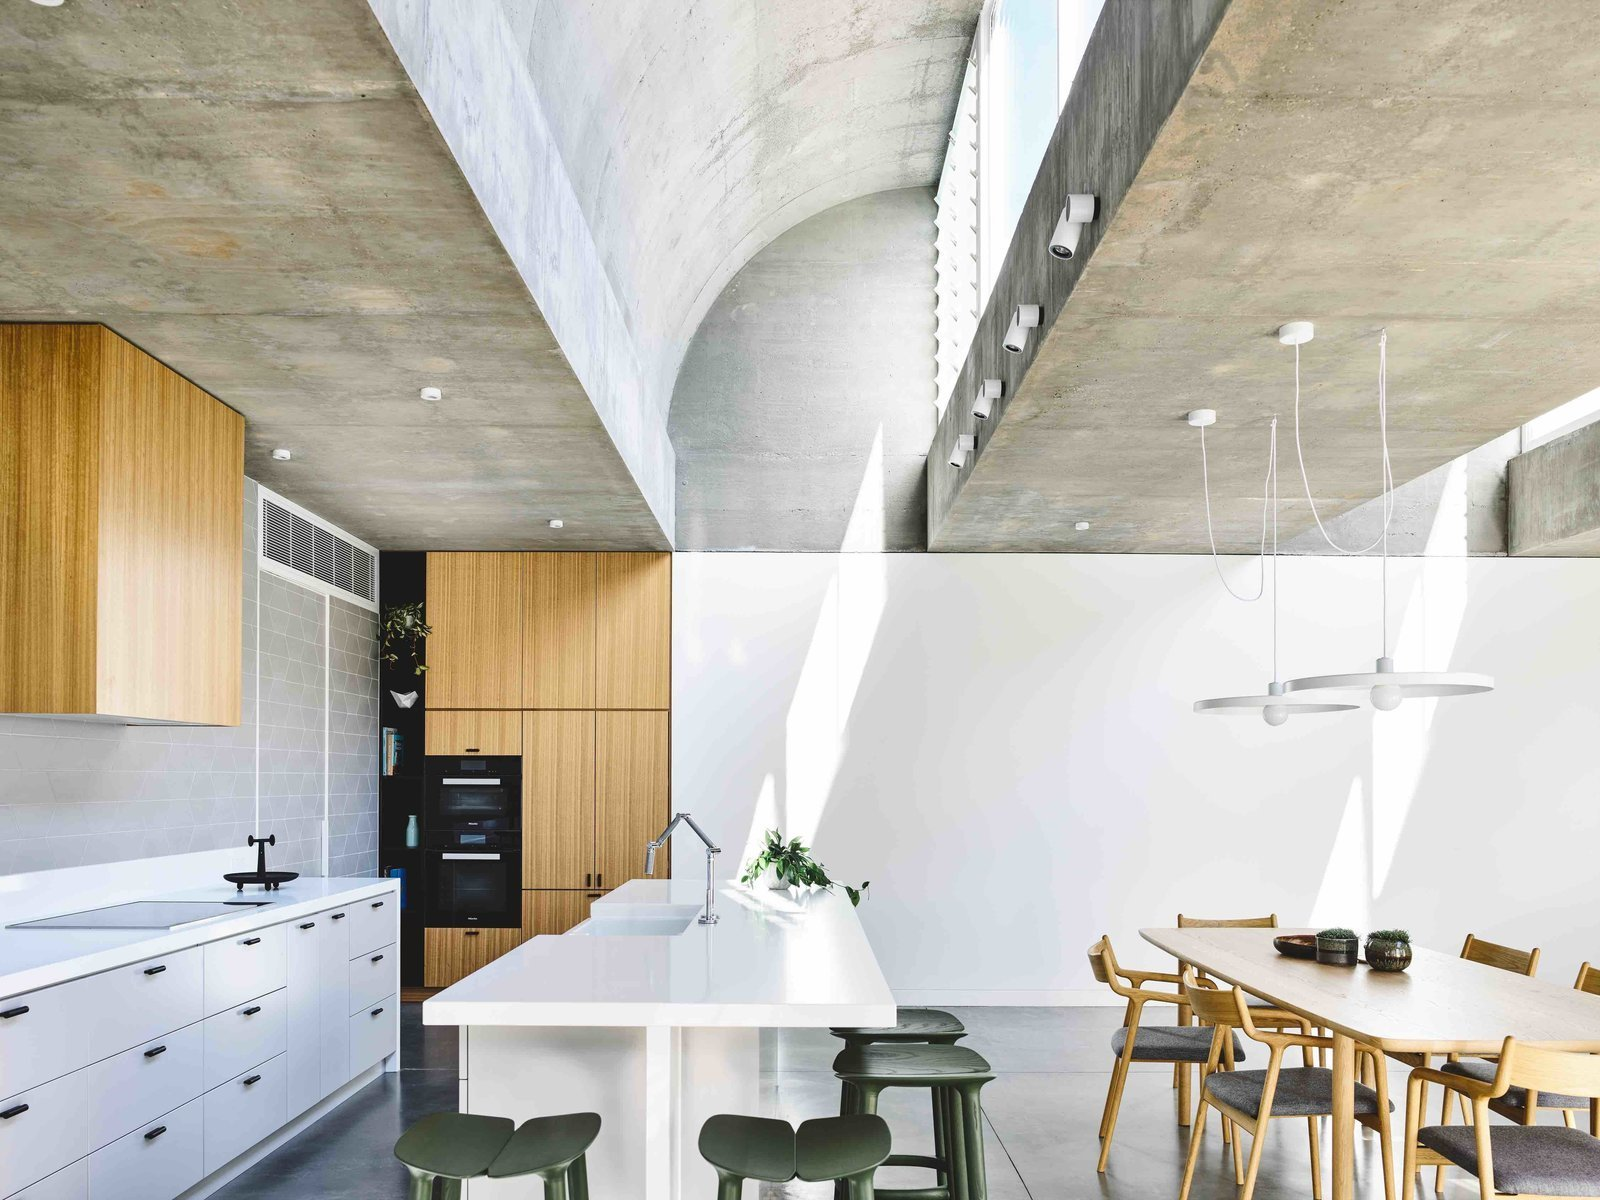 Kitchen, Wood Cabinet, Concrete Floor, Ceramic Tile Backsplashe, Pendant Lighting, Ceiling Lighting, Wall Oven, and Drop In Sink  Photo 4 of 11 in Vaulted Skylights and Concrete Columns Connect This Melbourne Home With the Sun